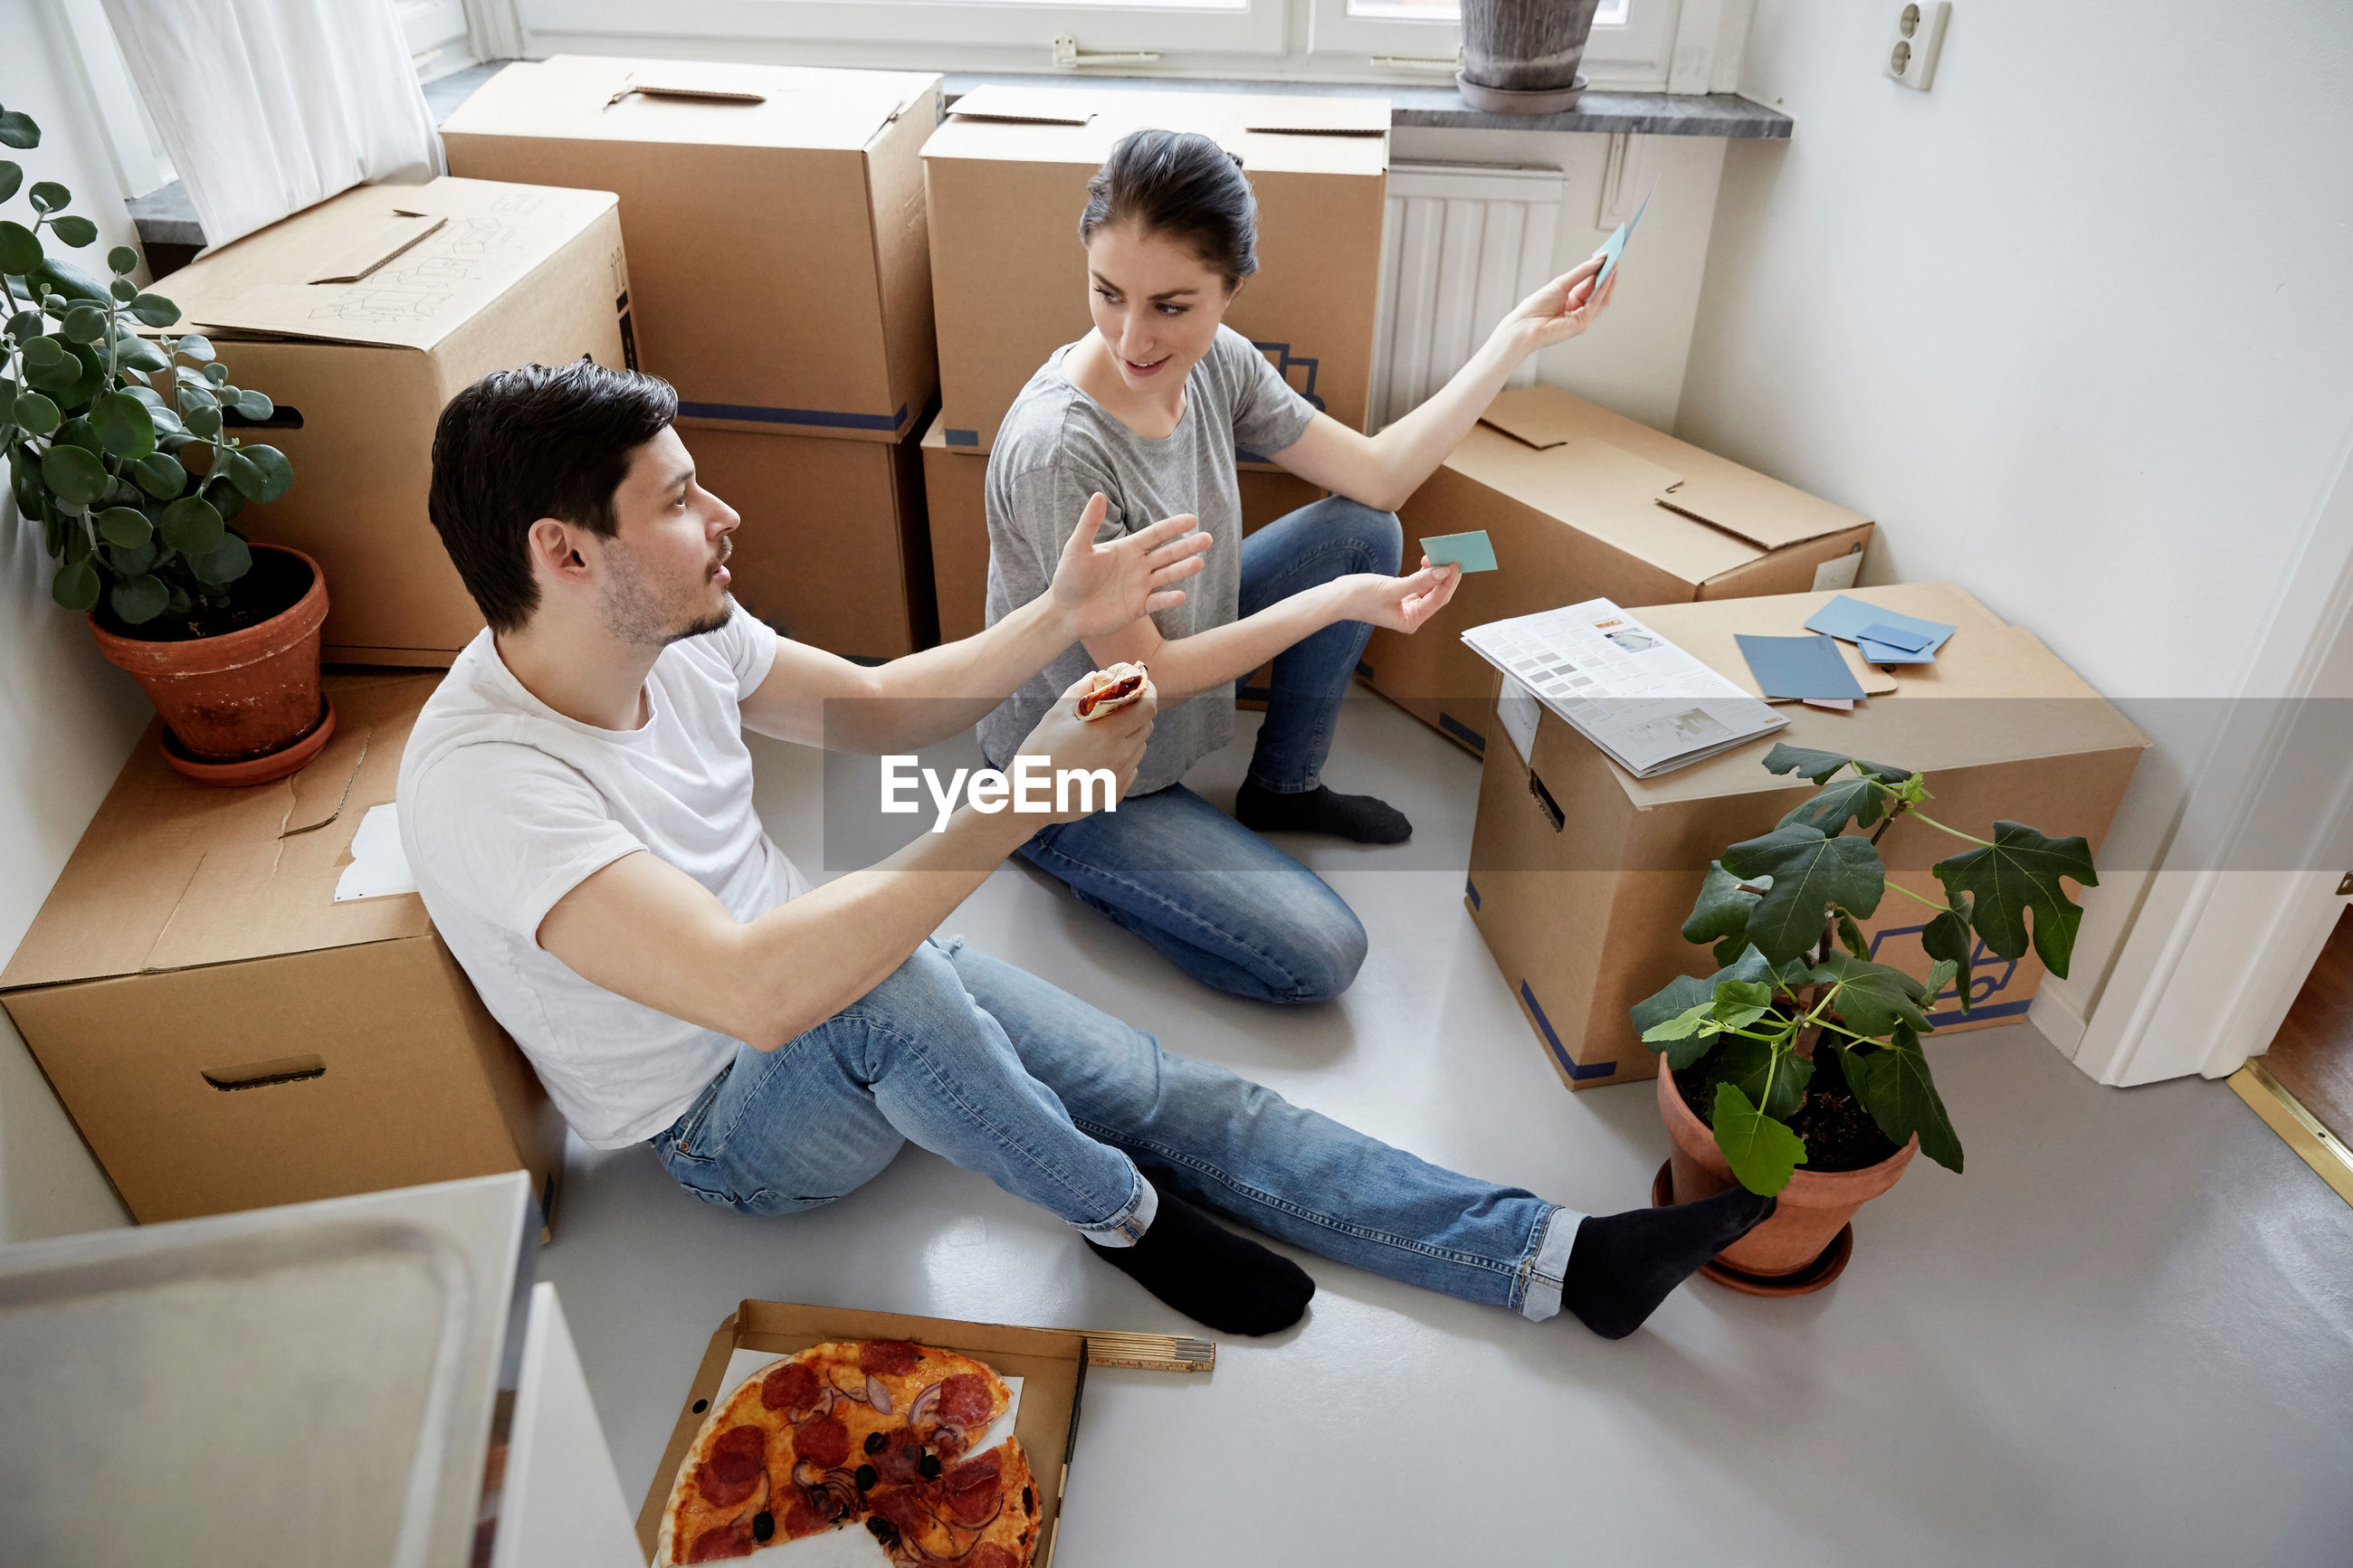 HIGH ANGLE VIEW OF COUPLE SITTING IN BOX